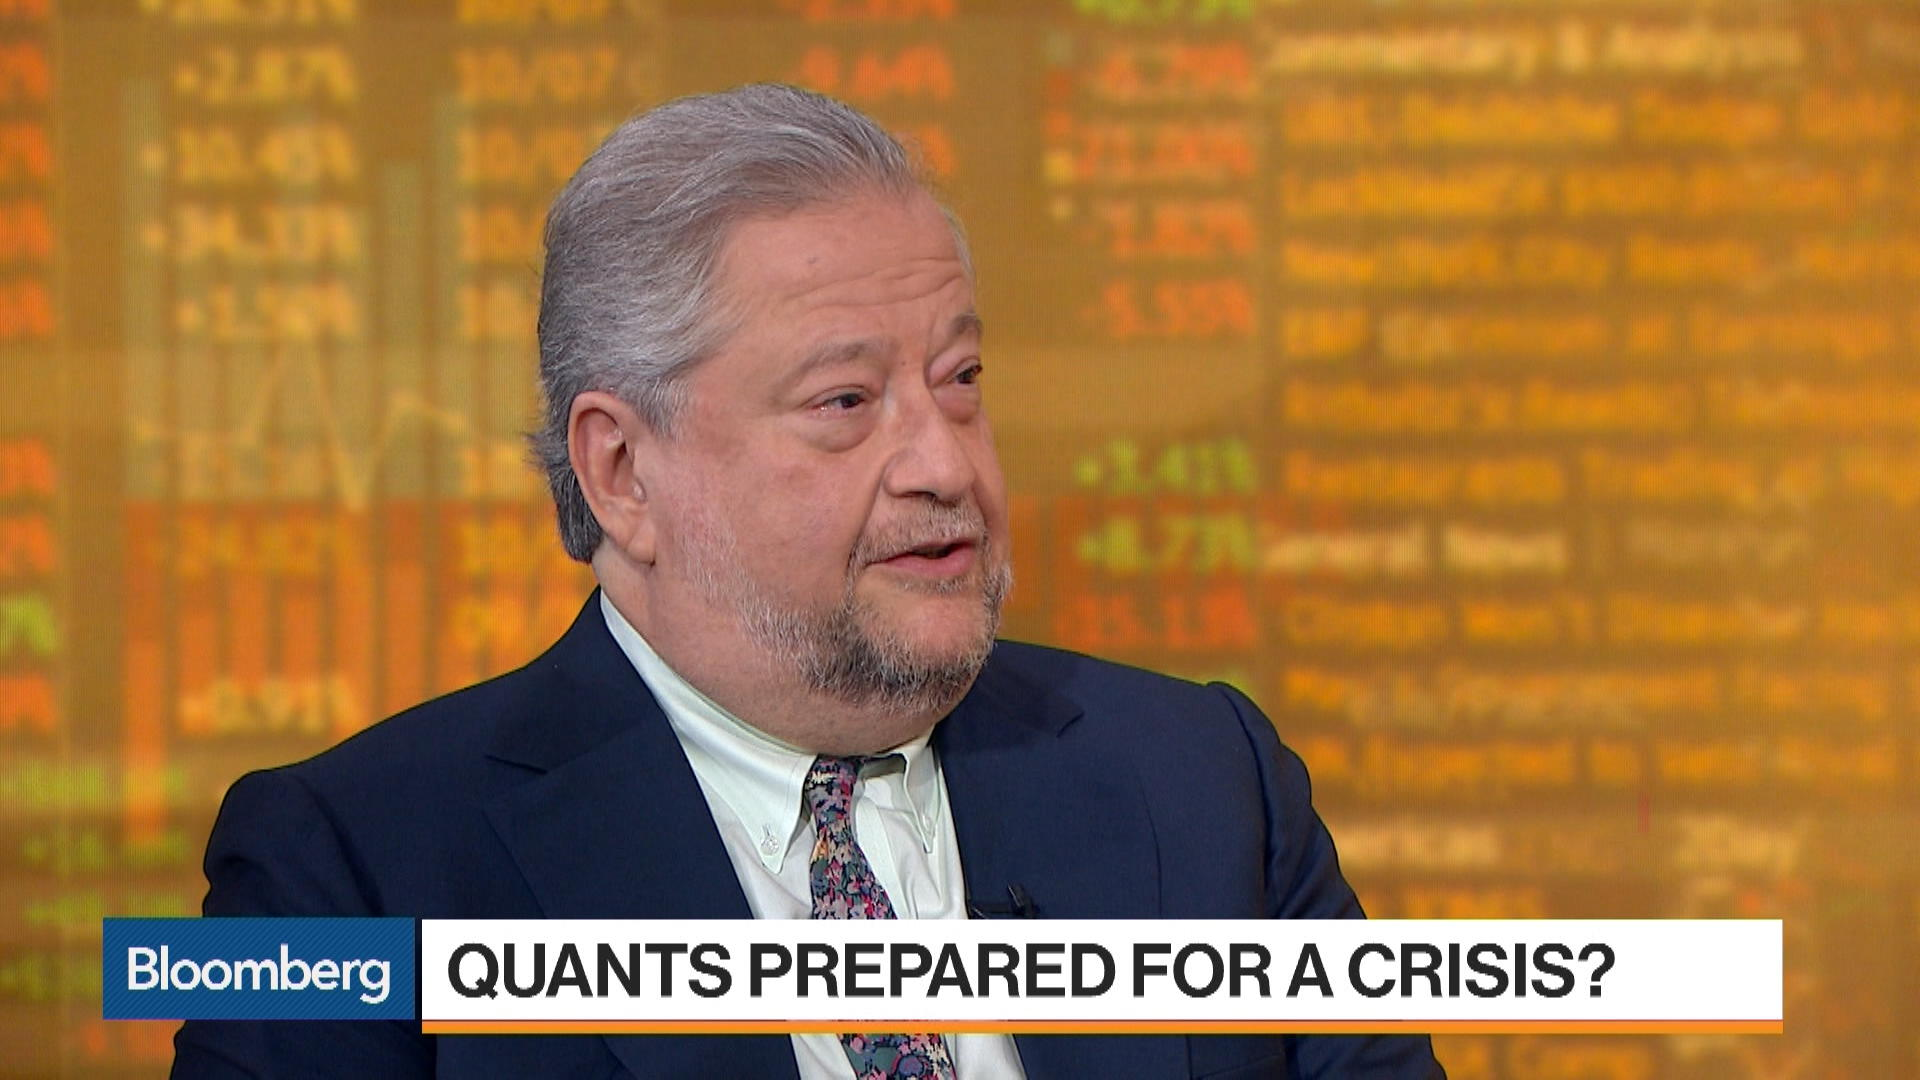 How a Quant Fund Crisis Might Impact Markets